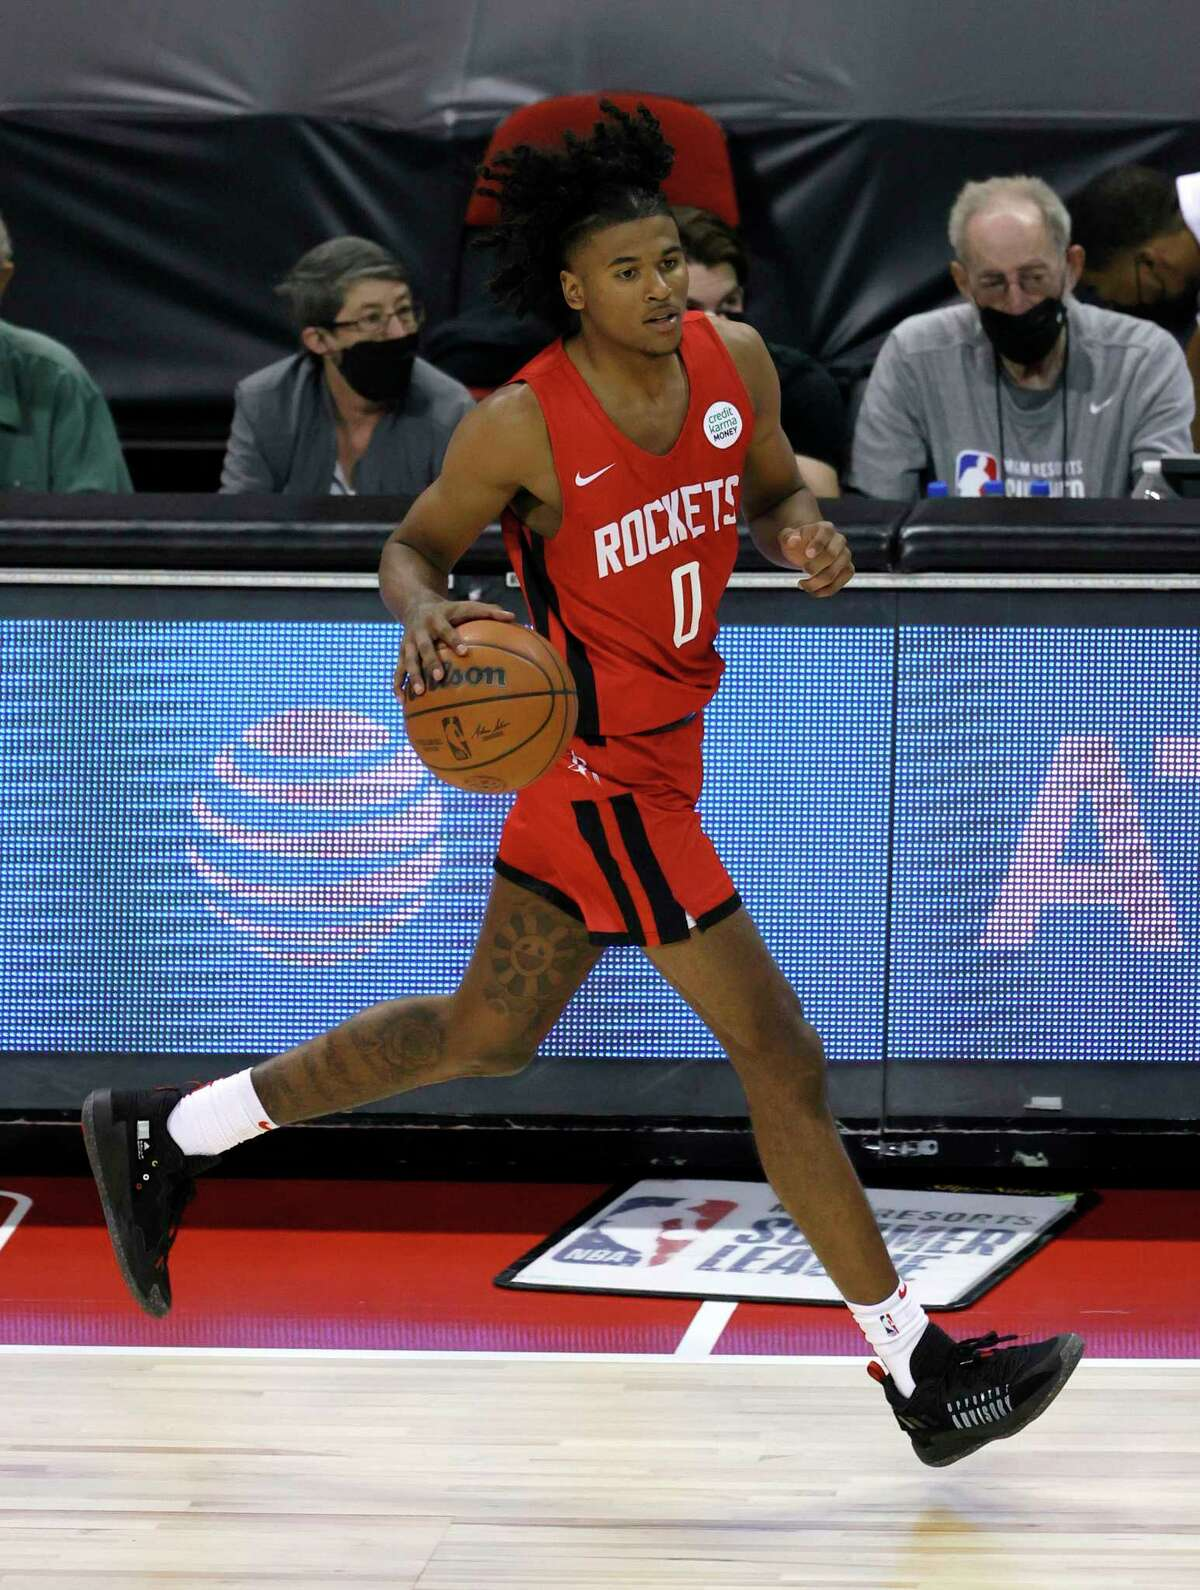 LAS VEGAS, NEVADA - AUGUST 08: Jalen Green #0 of the Houston Rockets brings the ball up the court against the Cleveland Cavaliers during the 2021 NBA Summer League at the Thomas & Mack Center on August 8, 2021 in Las Vegas, Nevada. The Rockets defeated the Cavaliers 84-76.